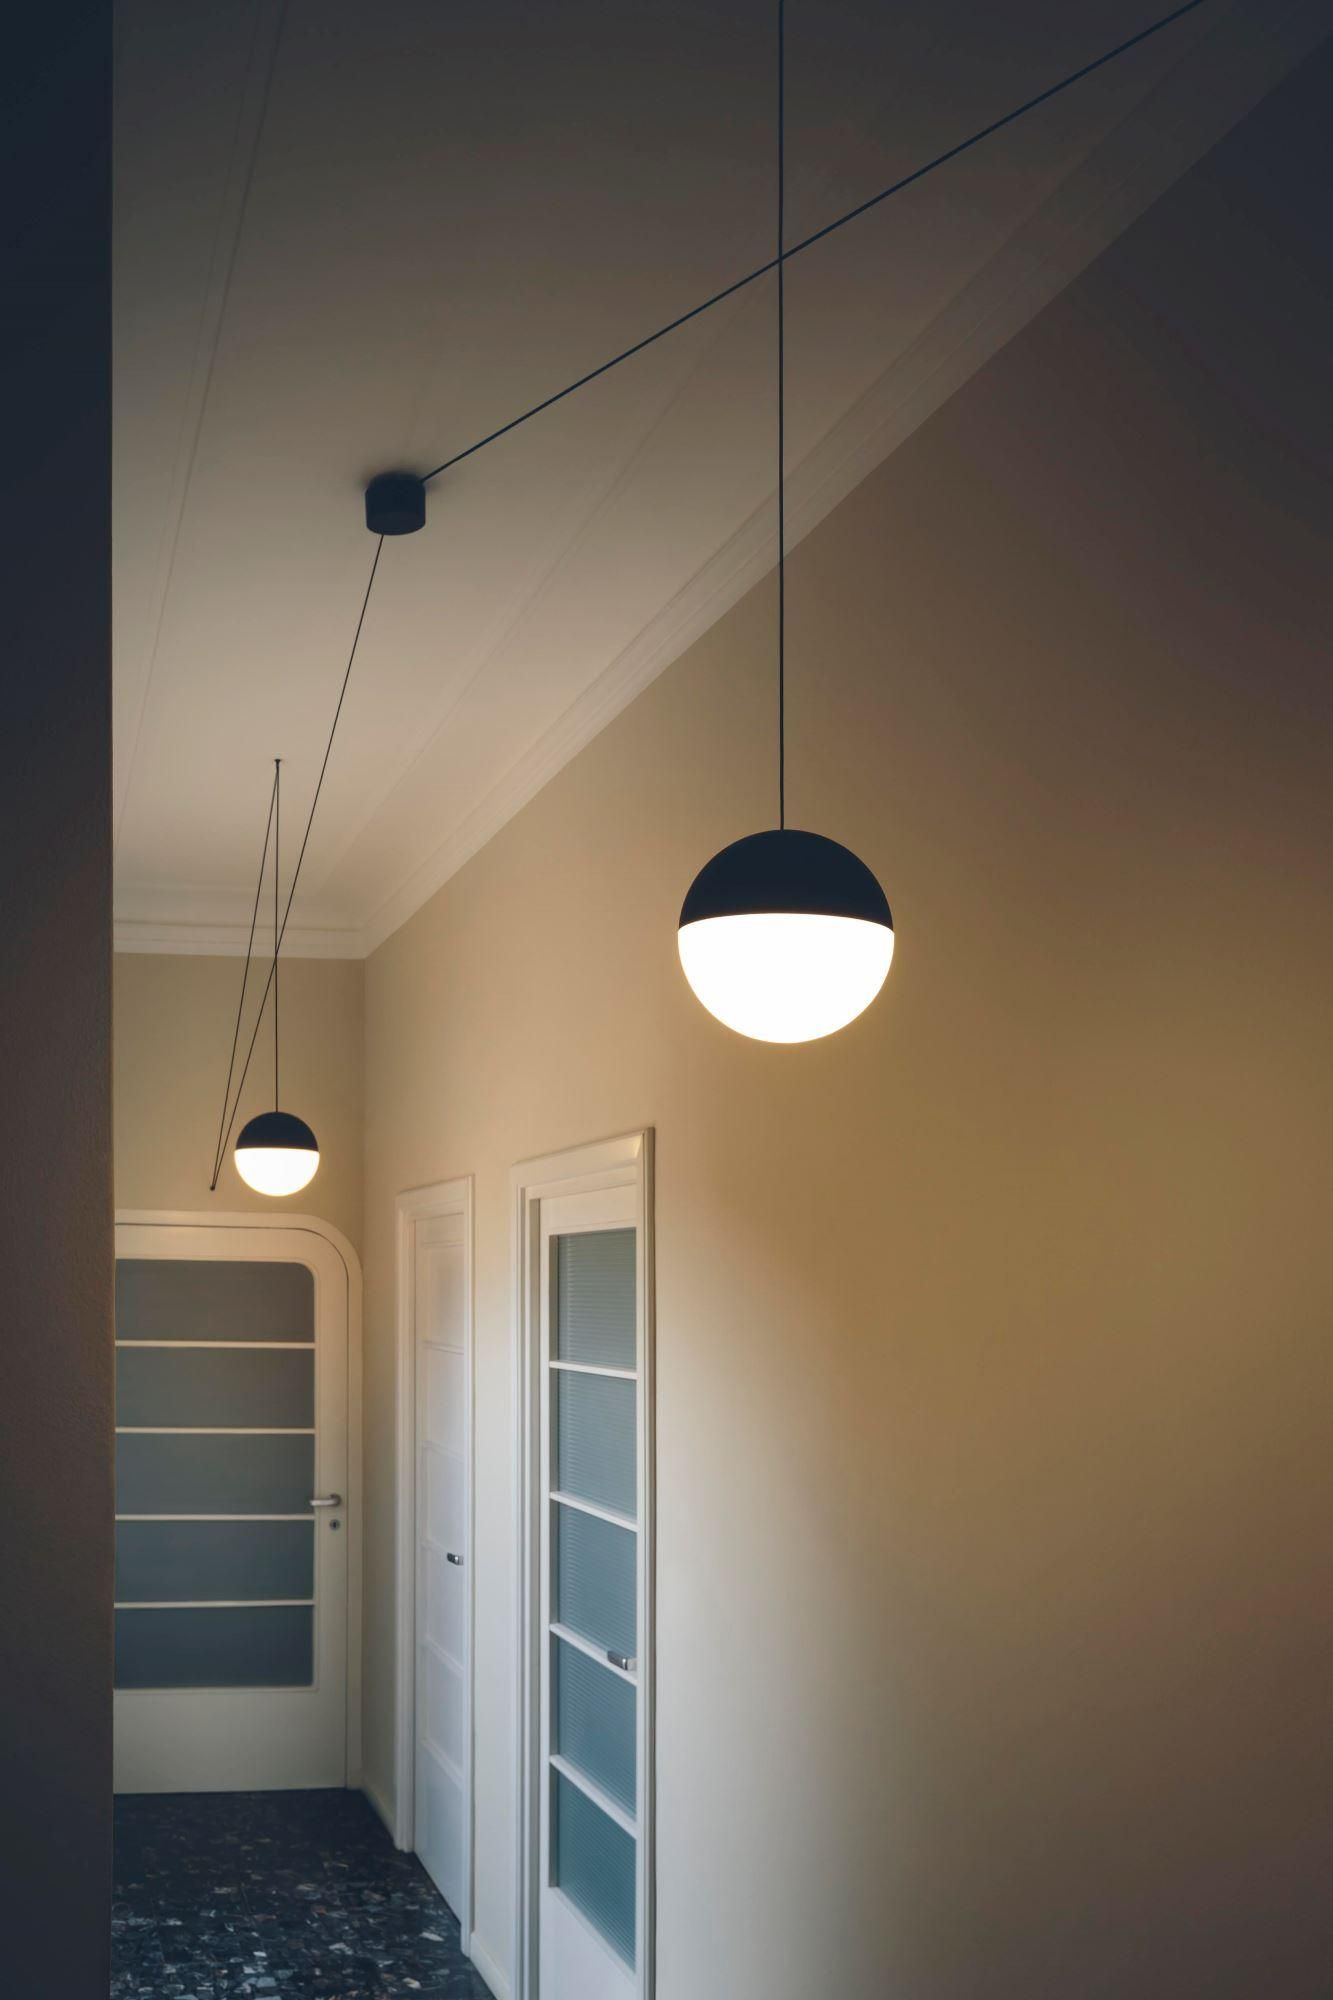 diffused lighting fixtures. String Lights By Flos Diffused Lighting Fixtures I